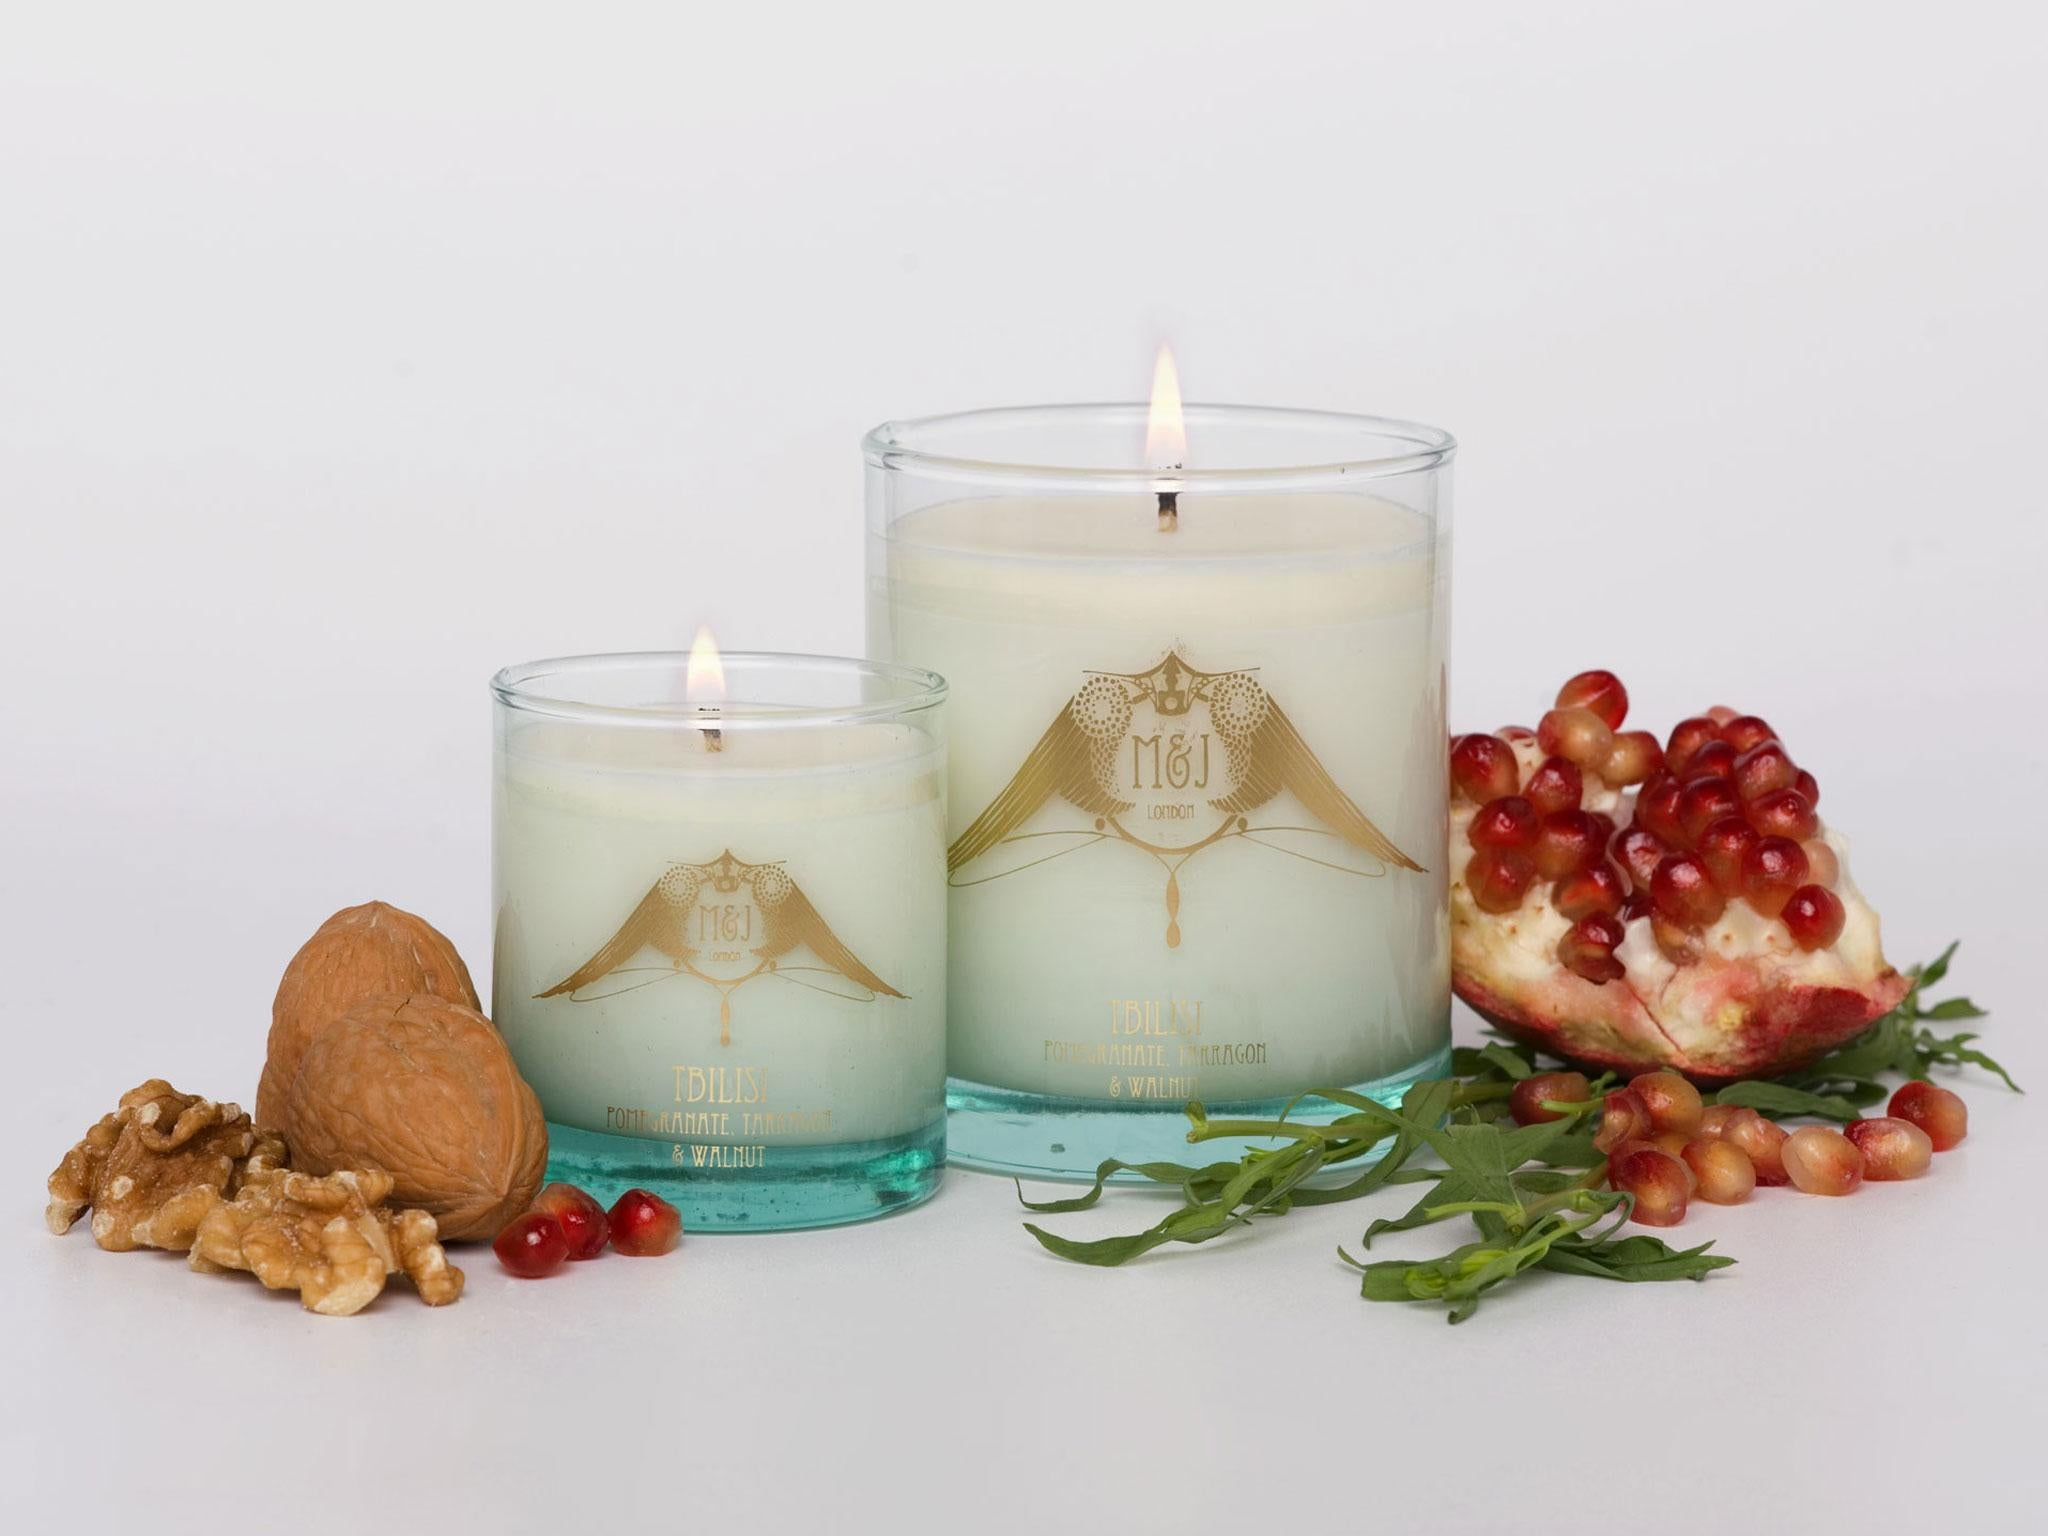 northern bottleabra carlisles store img products home on candles light featured october lights